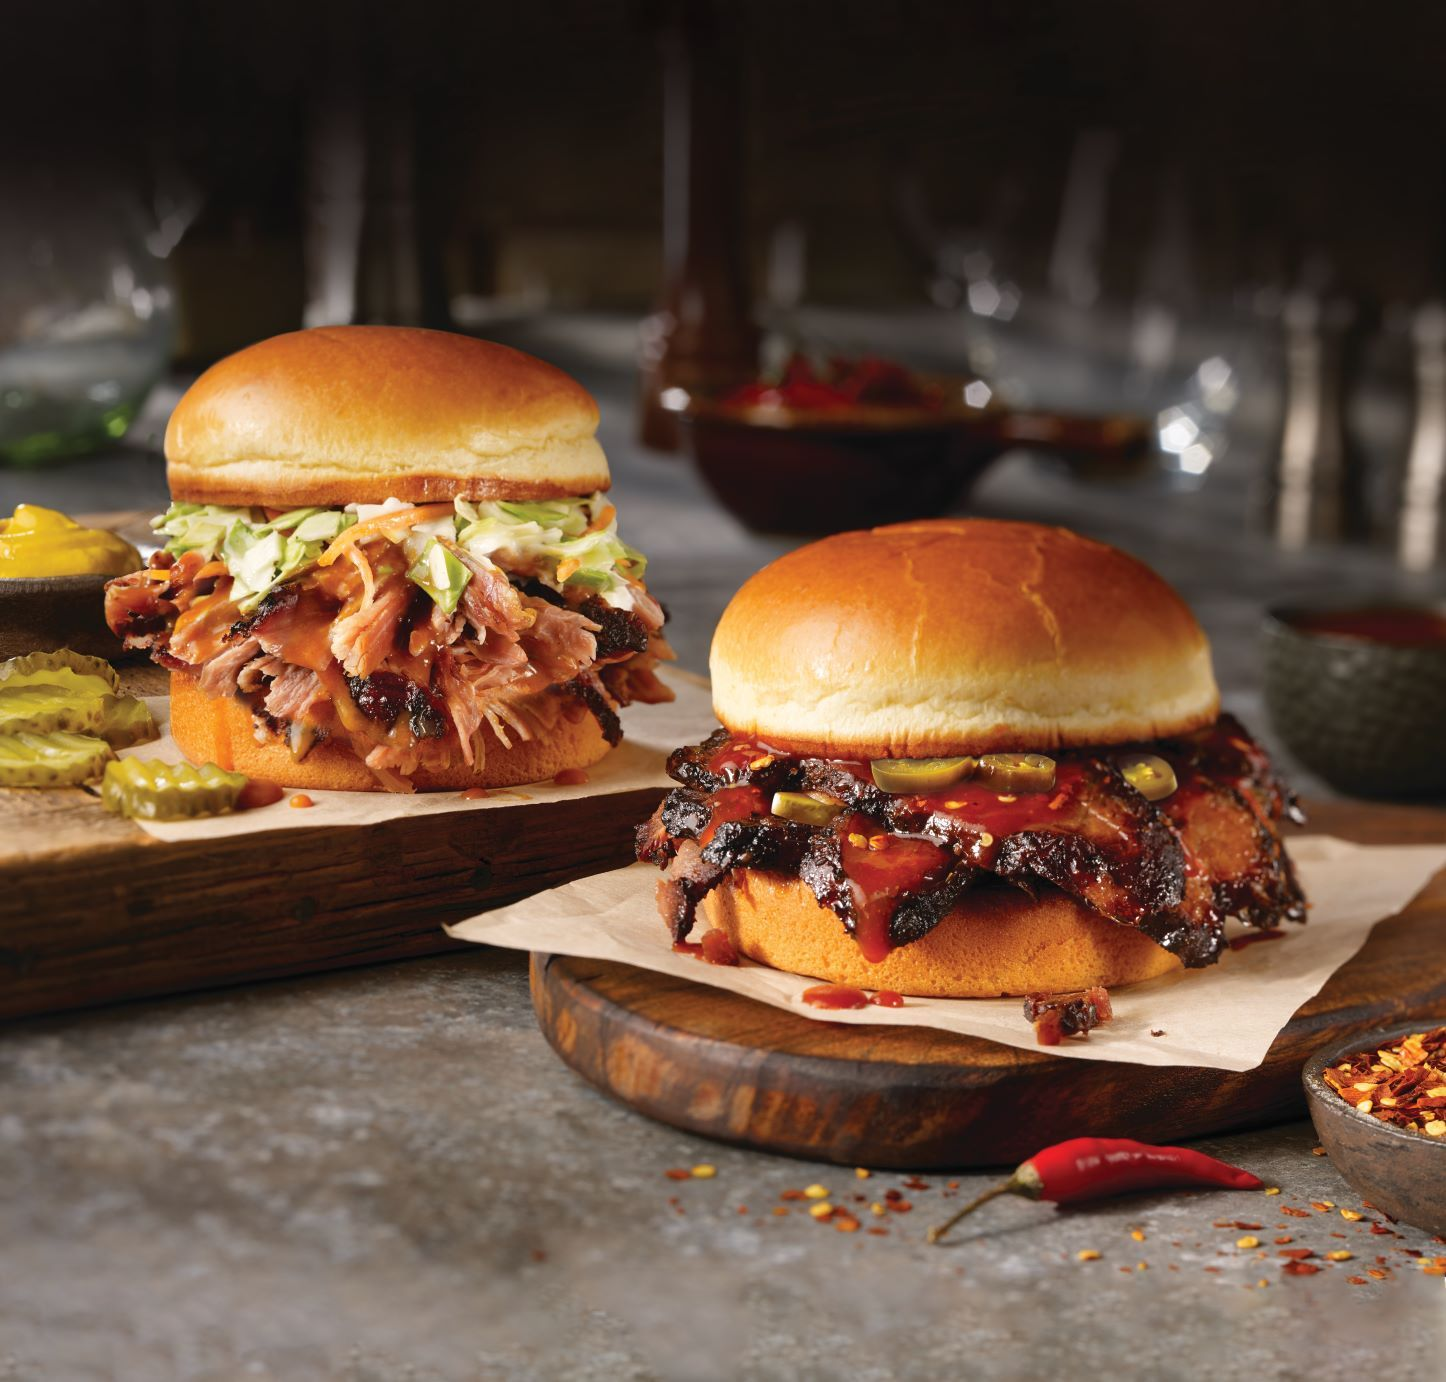 Dickey's new Texas Hot Brisket Sandwich is loaded with Texas-style brisket and topped with Texas hot barbecue sauce and jalapenos in between a warm brioche bun. The Carolina Style Pulled Pork Sandwich is Dickey's sweet and tangy twist on a barbecue staple that includes Dickey's famous hickory-smoked pulled pork topped with Carolina Barbecue Sauce and cole slaw on a warm brioche bun.